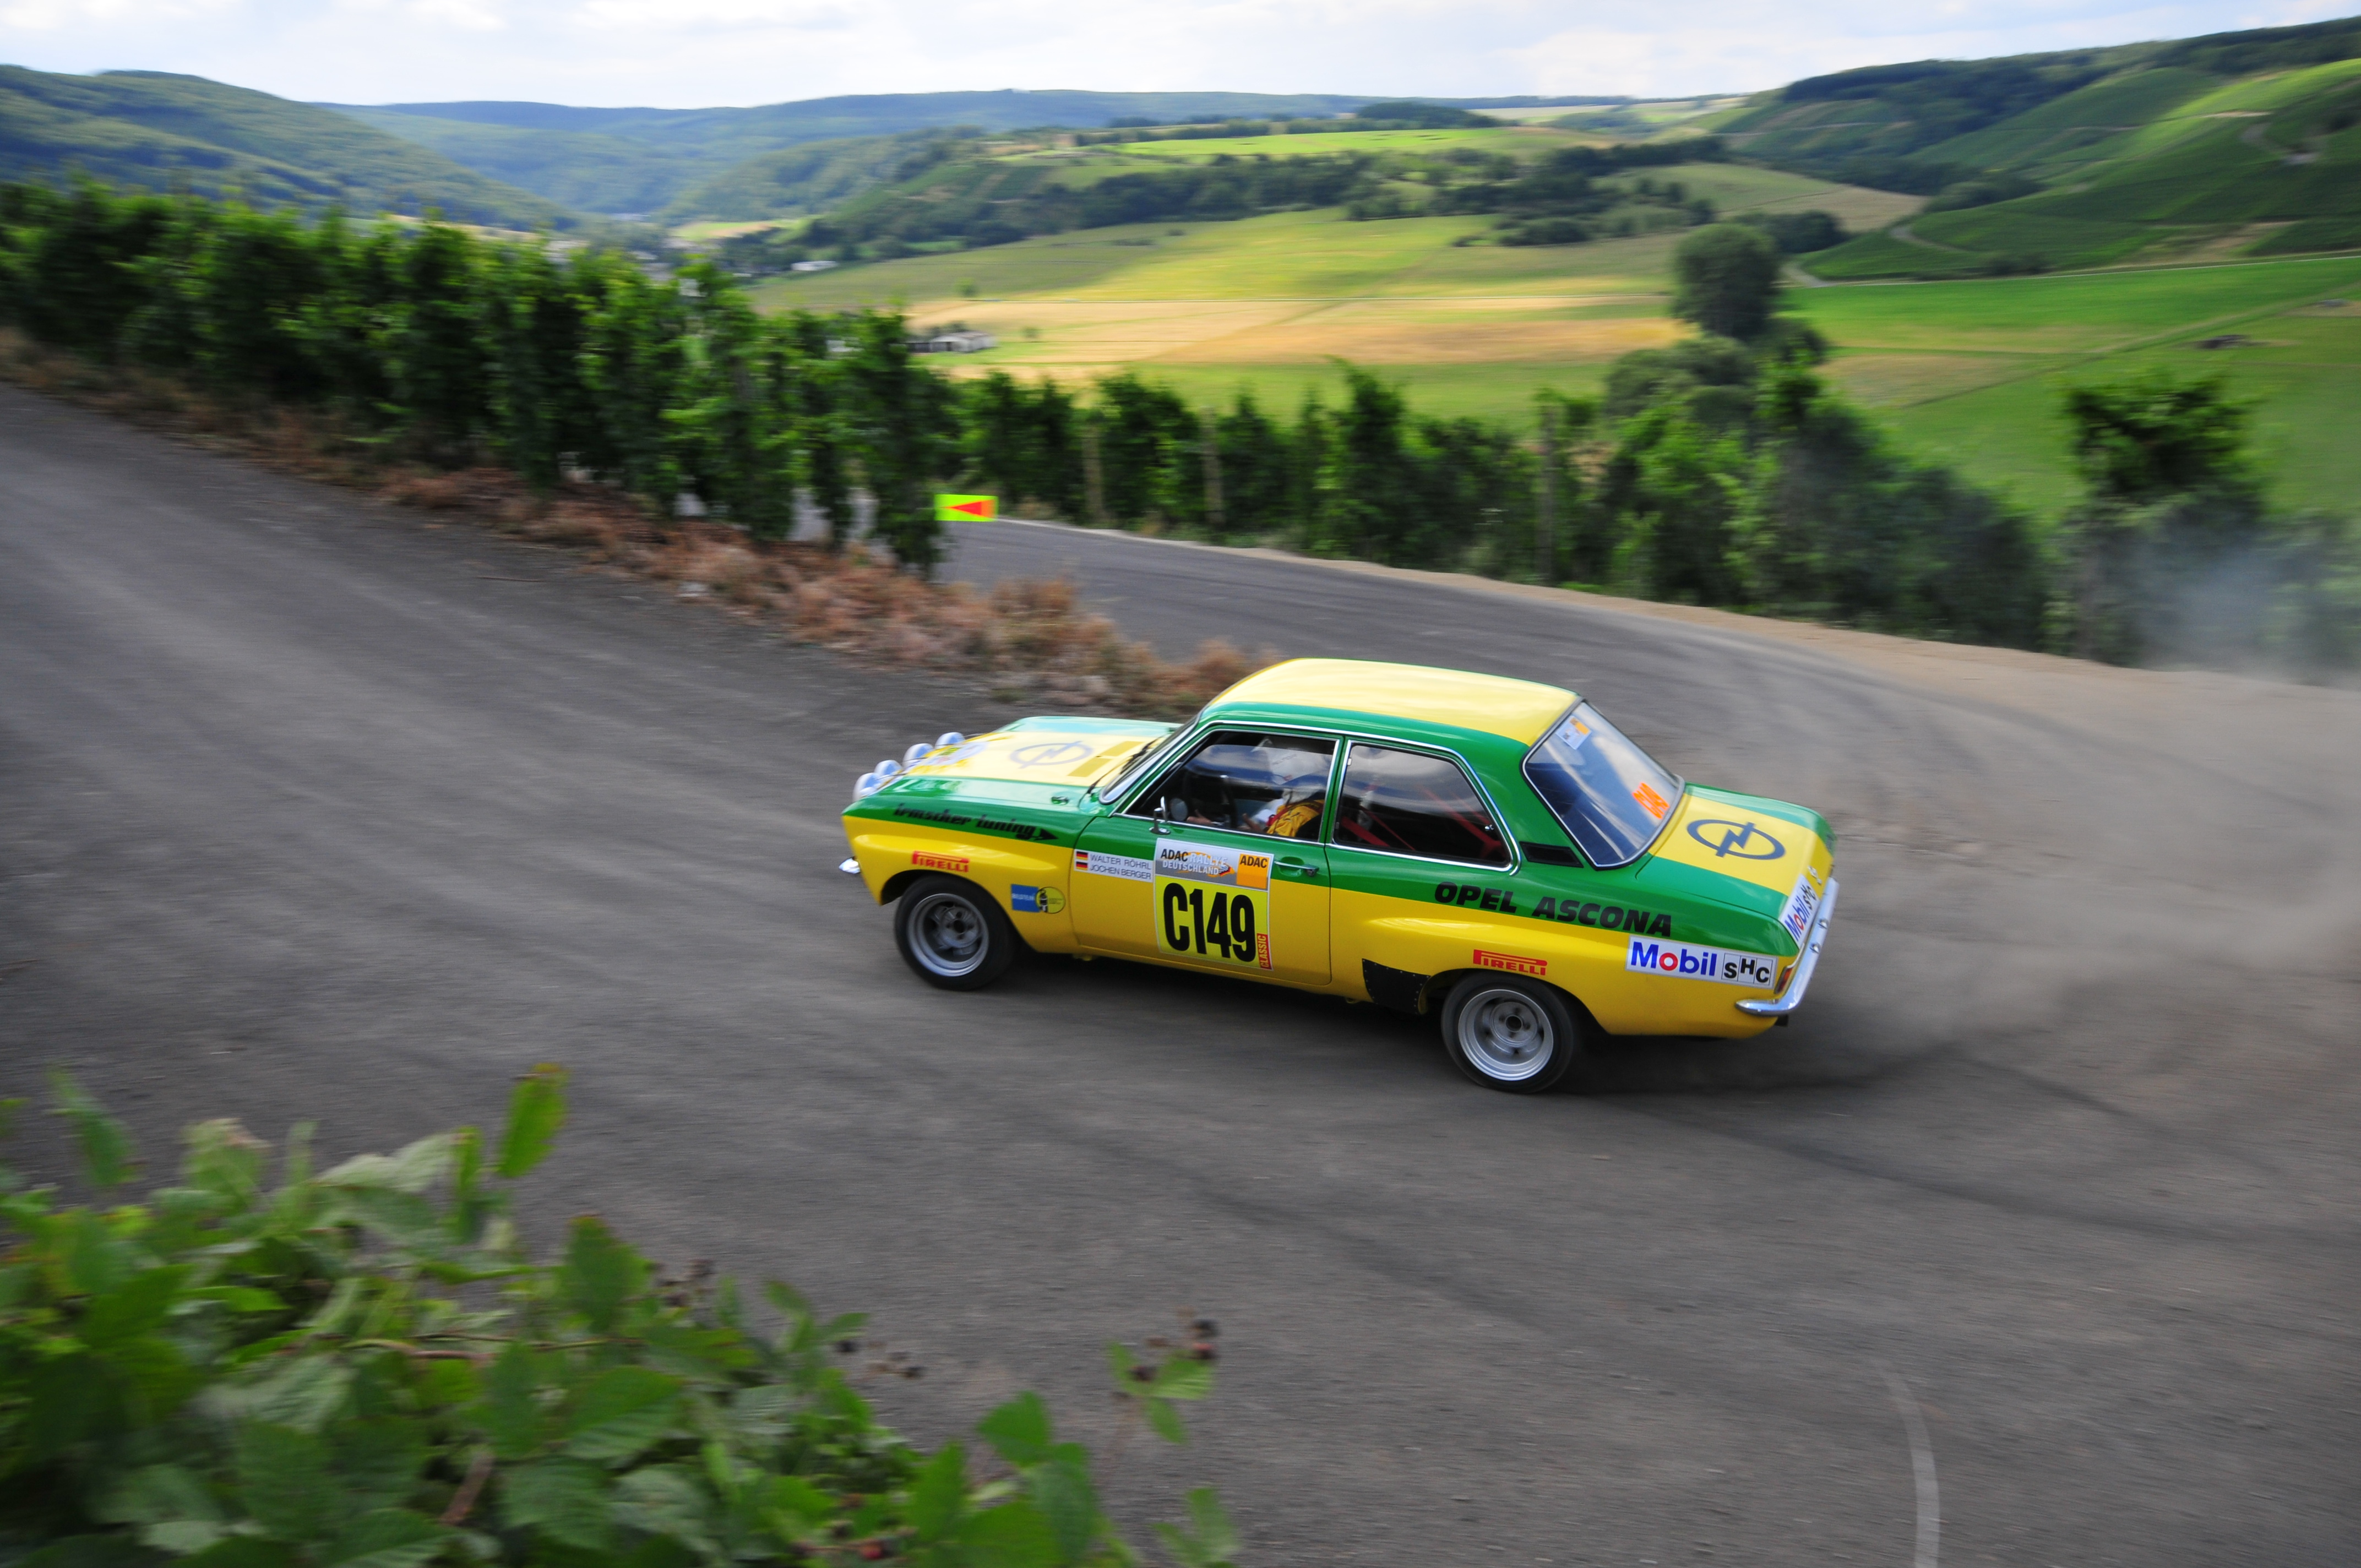 The Opel Rekord was a large family car/executive car which was built in several generations by the German car...